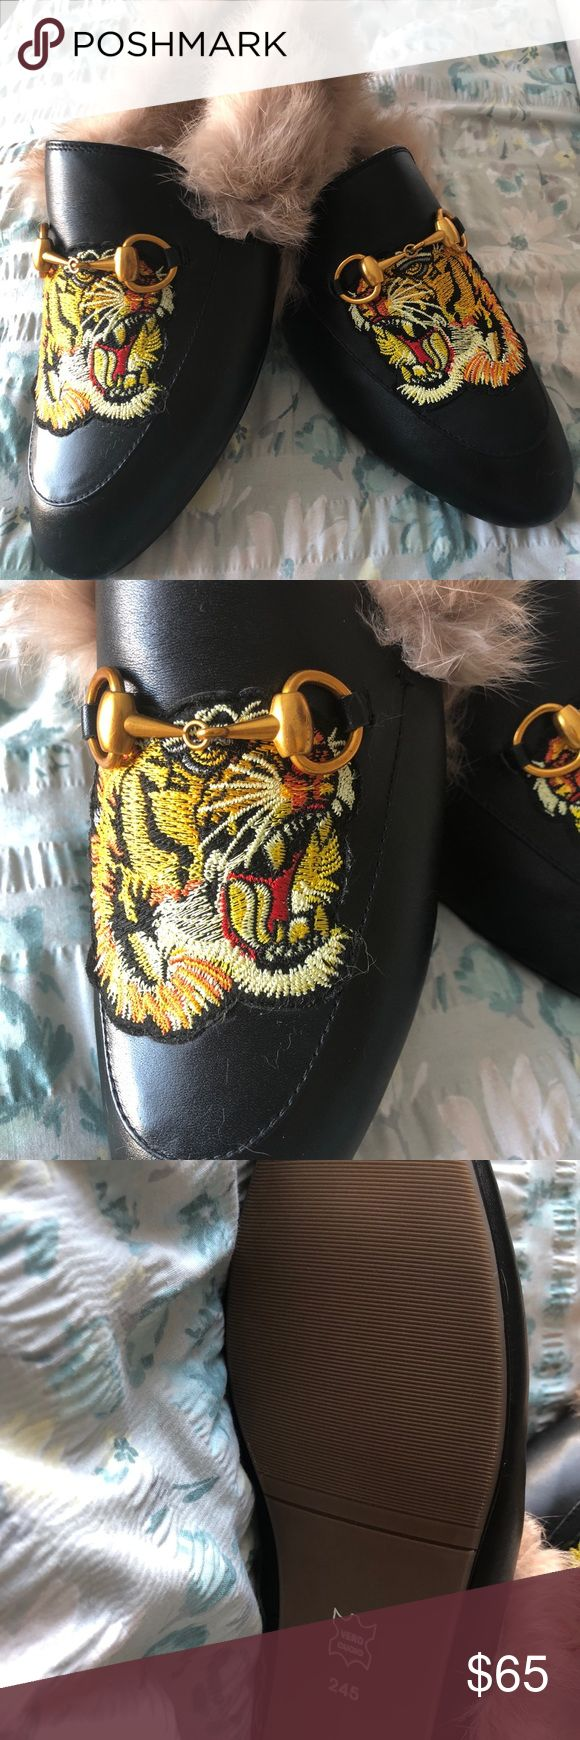 Fur loafers Fur loafers with tiger patch never worn. Shoes Flats & Loafers